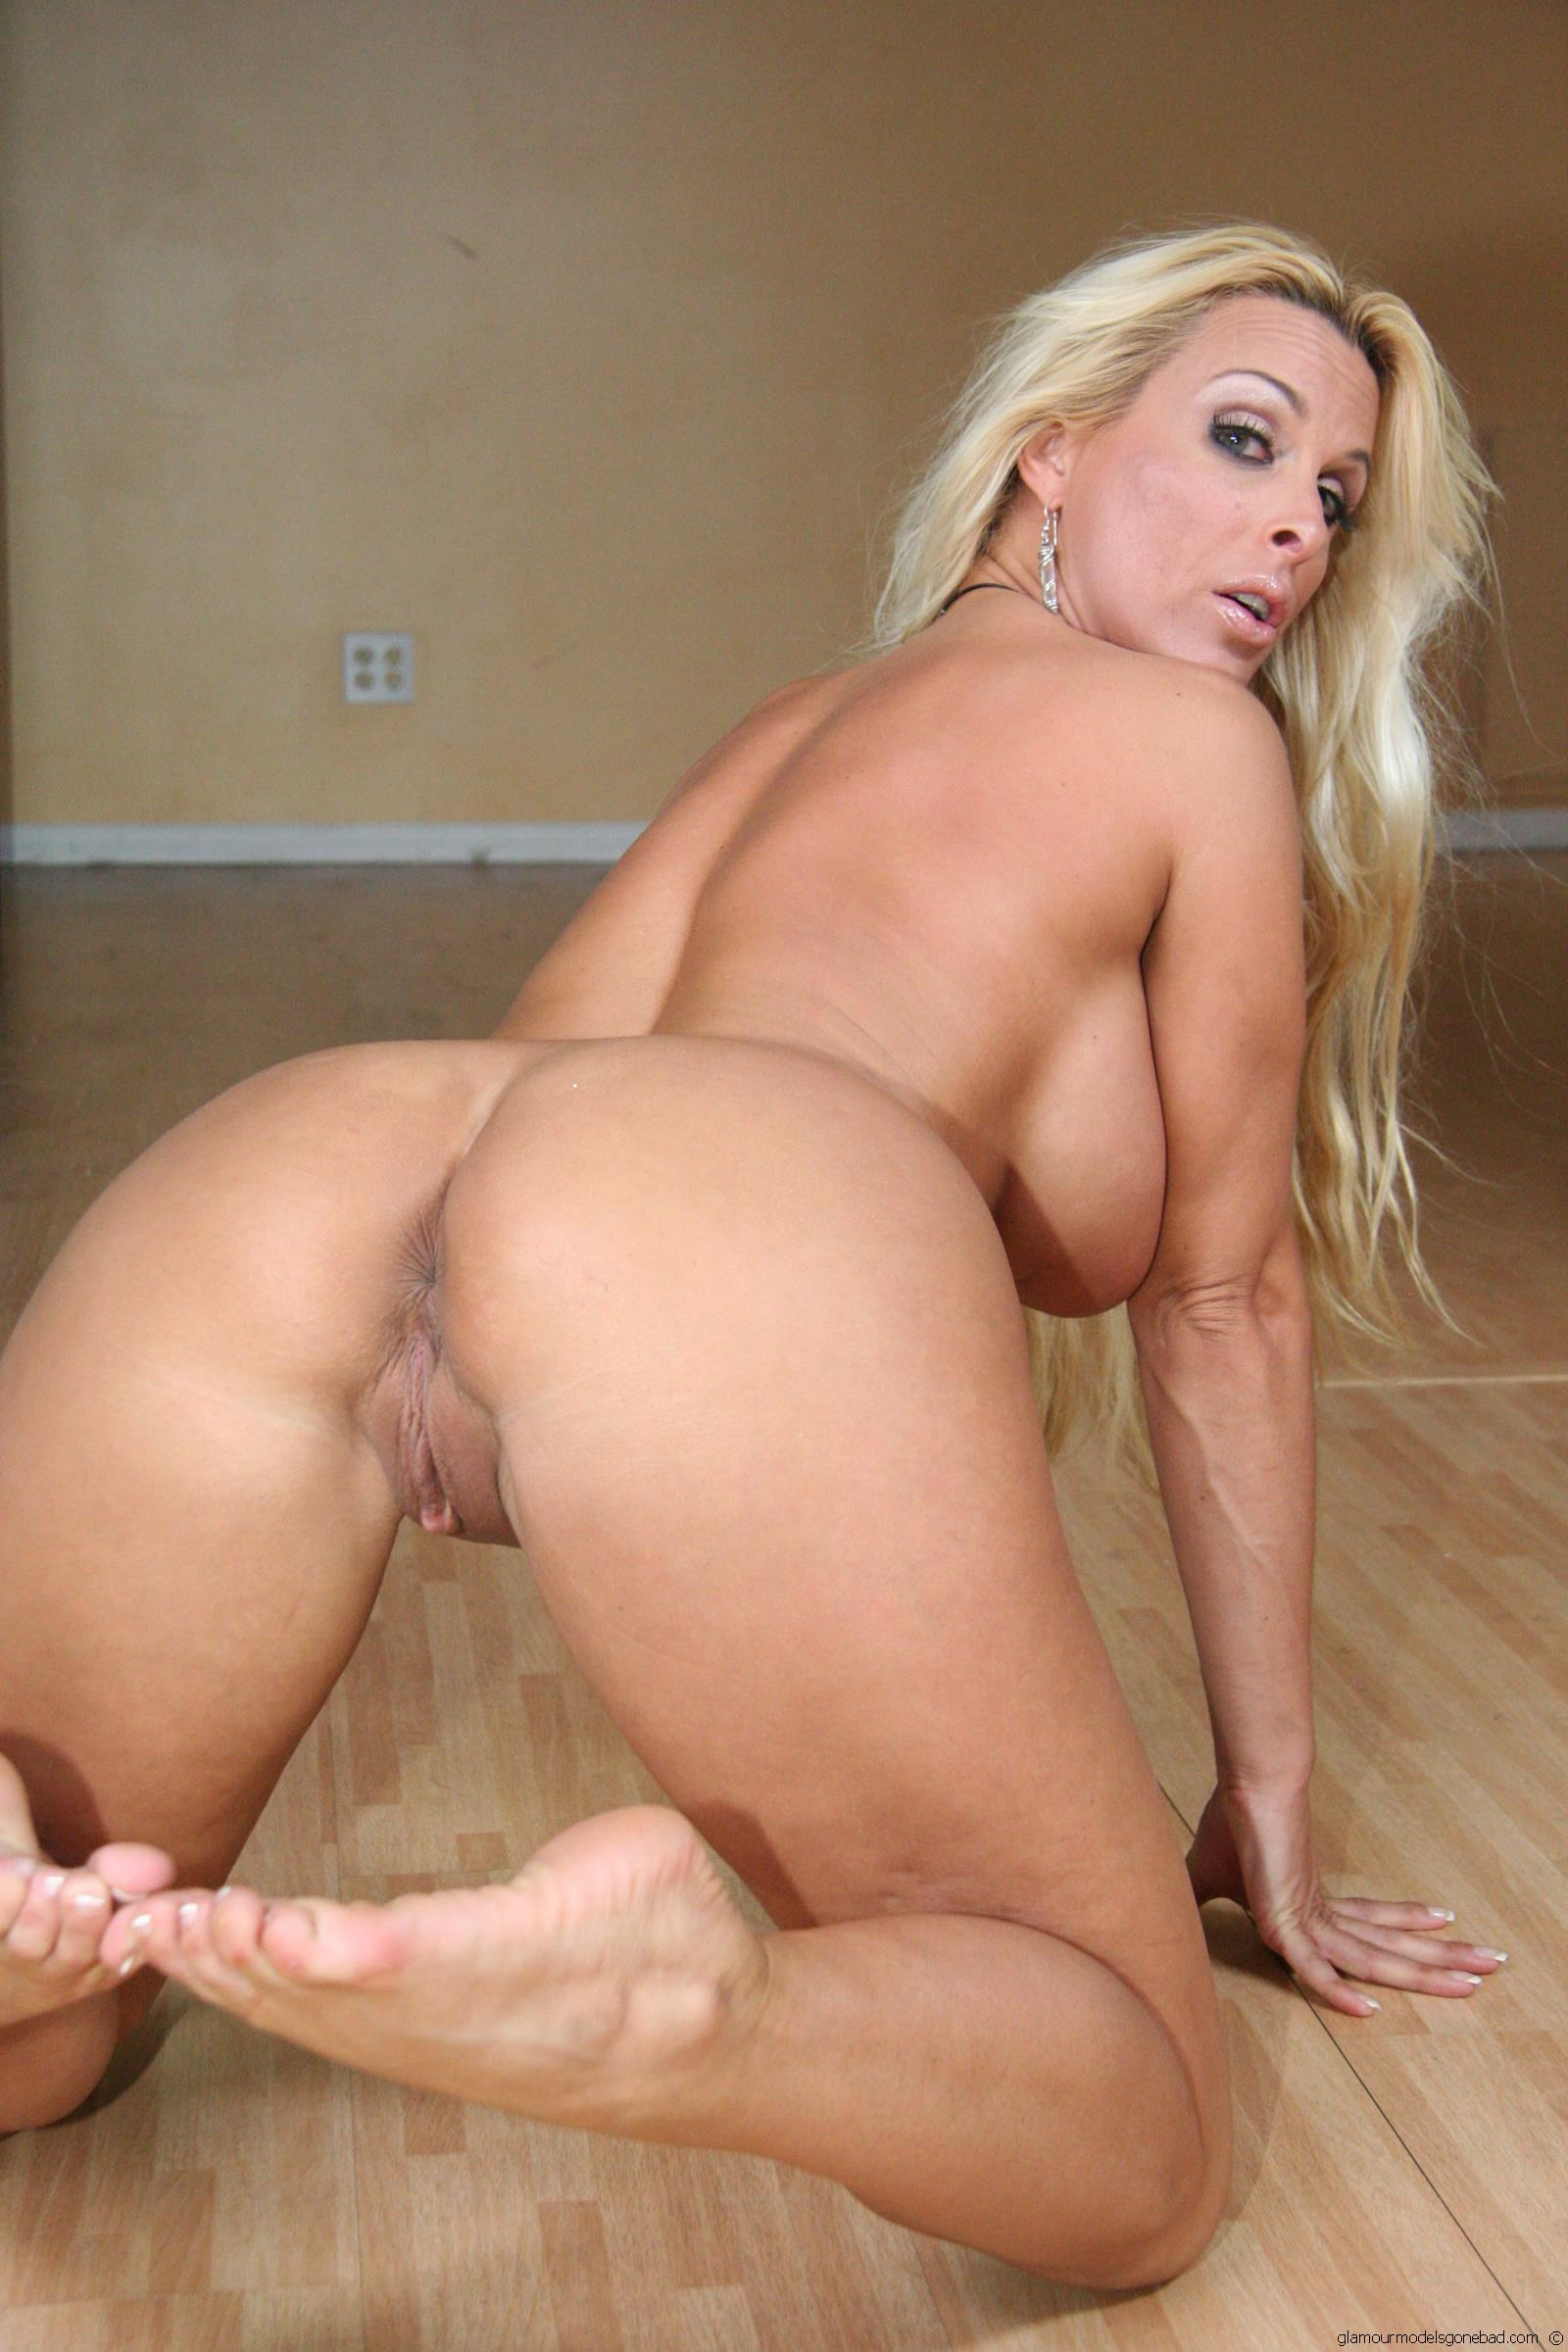 Xxx videos download